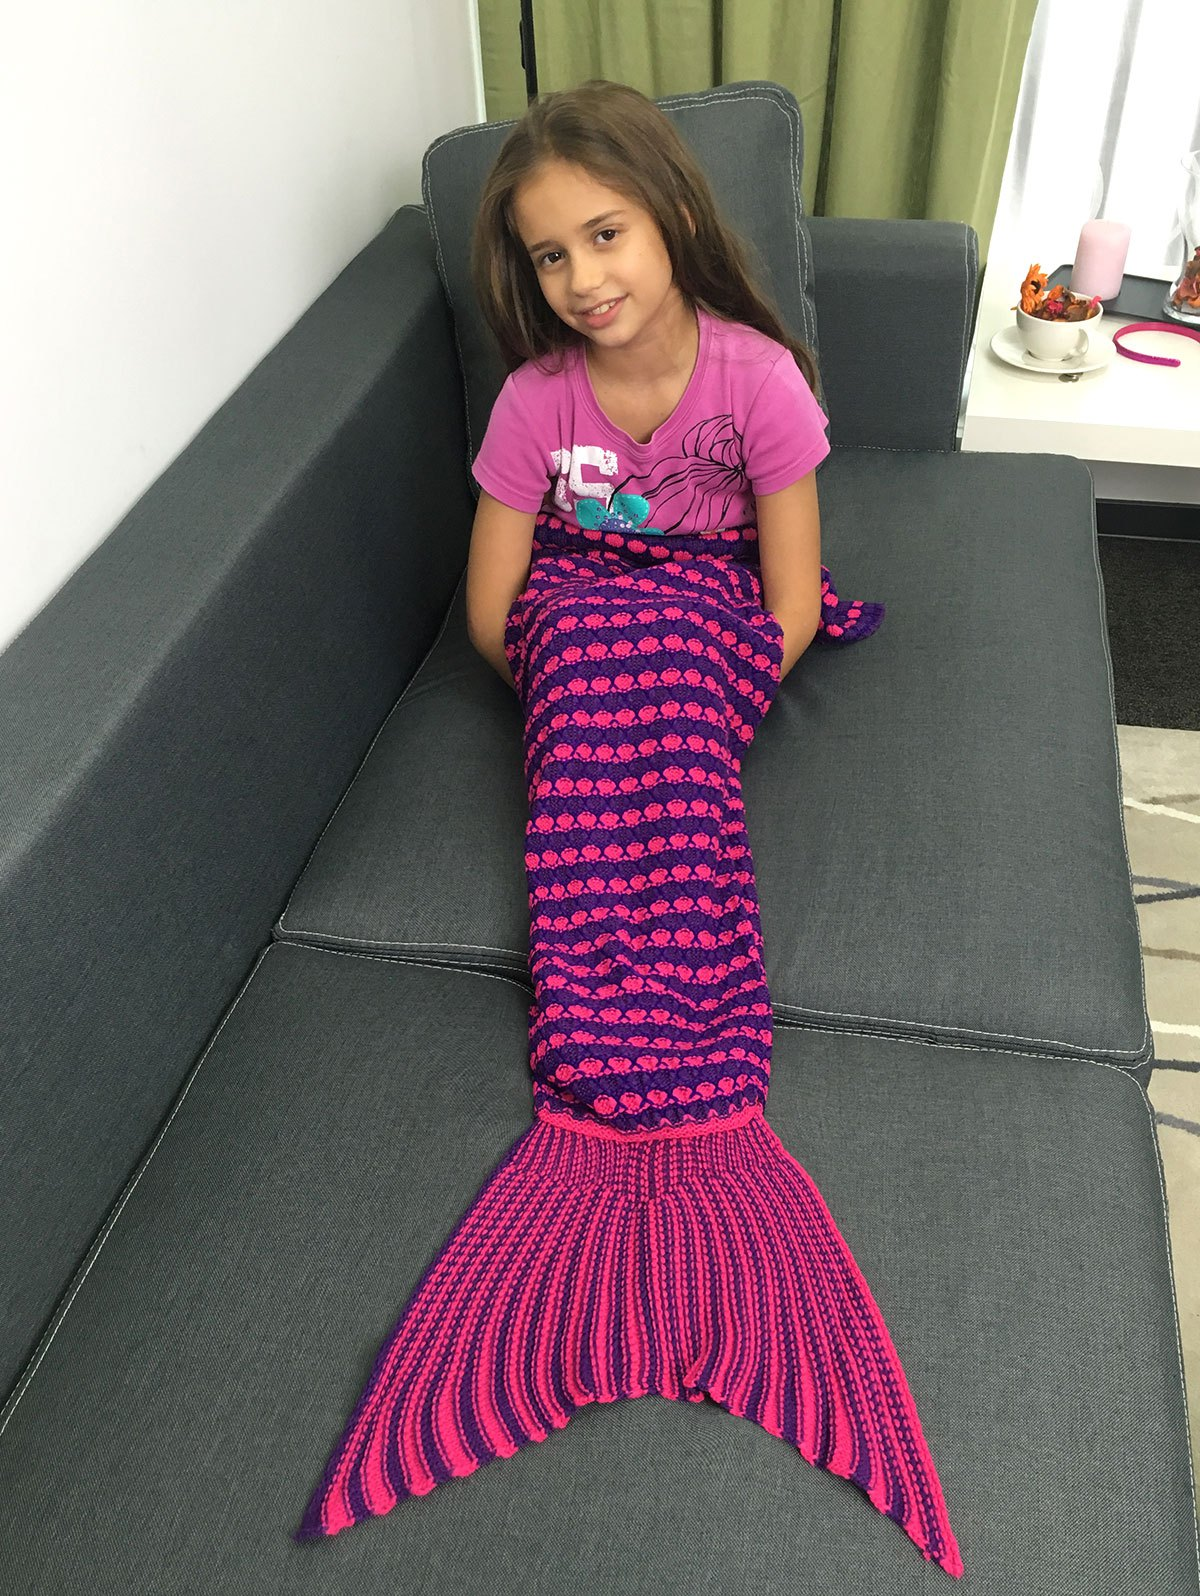 Warmth Color Block  Crochet Knitting Fish Scales Design Mermaid Tail Style Kids' Blanket - COLORMIX